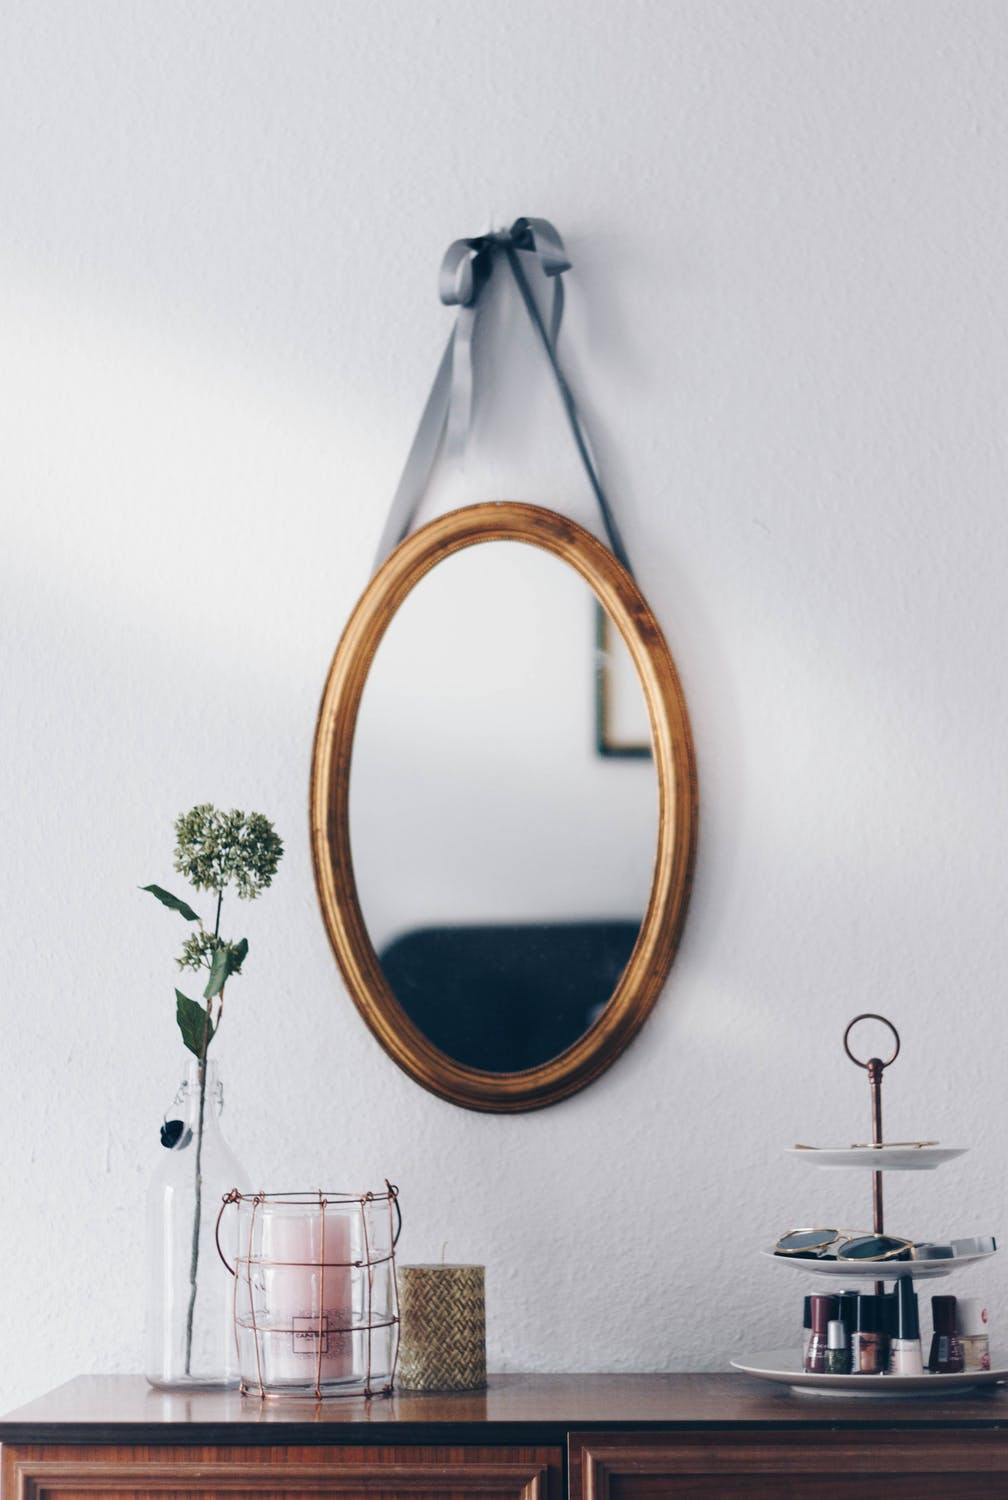 Top tips for packing mirrors for relocation